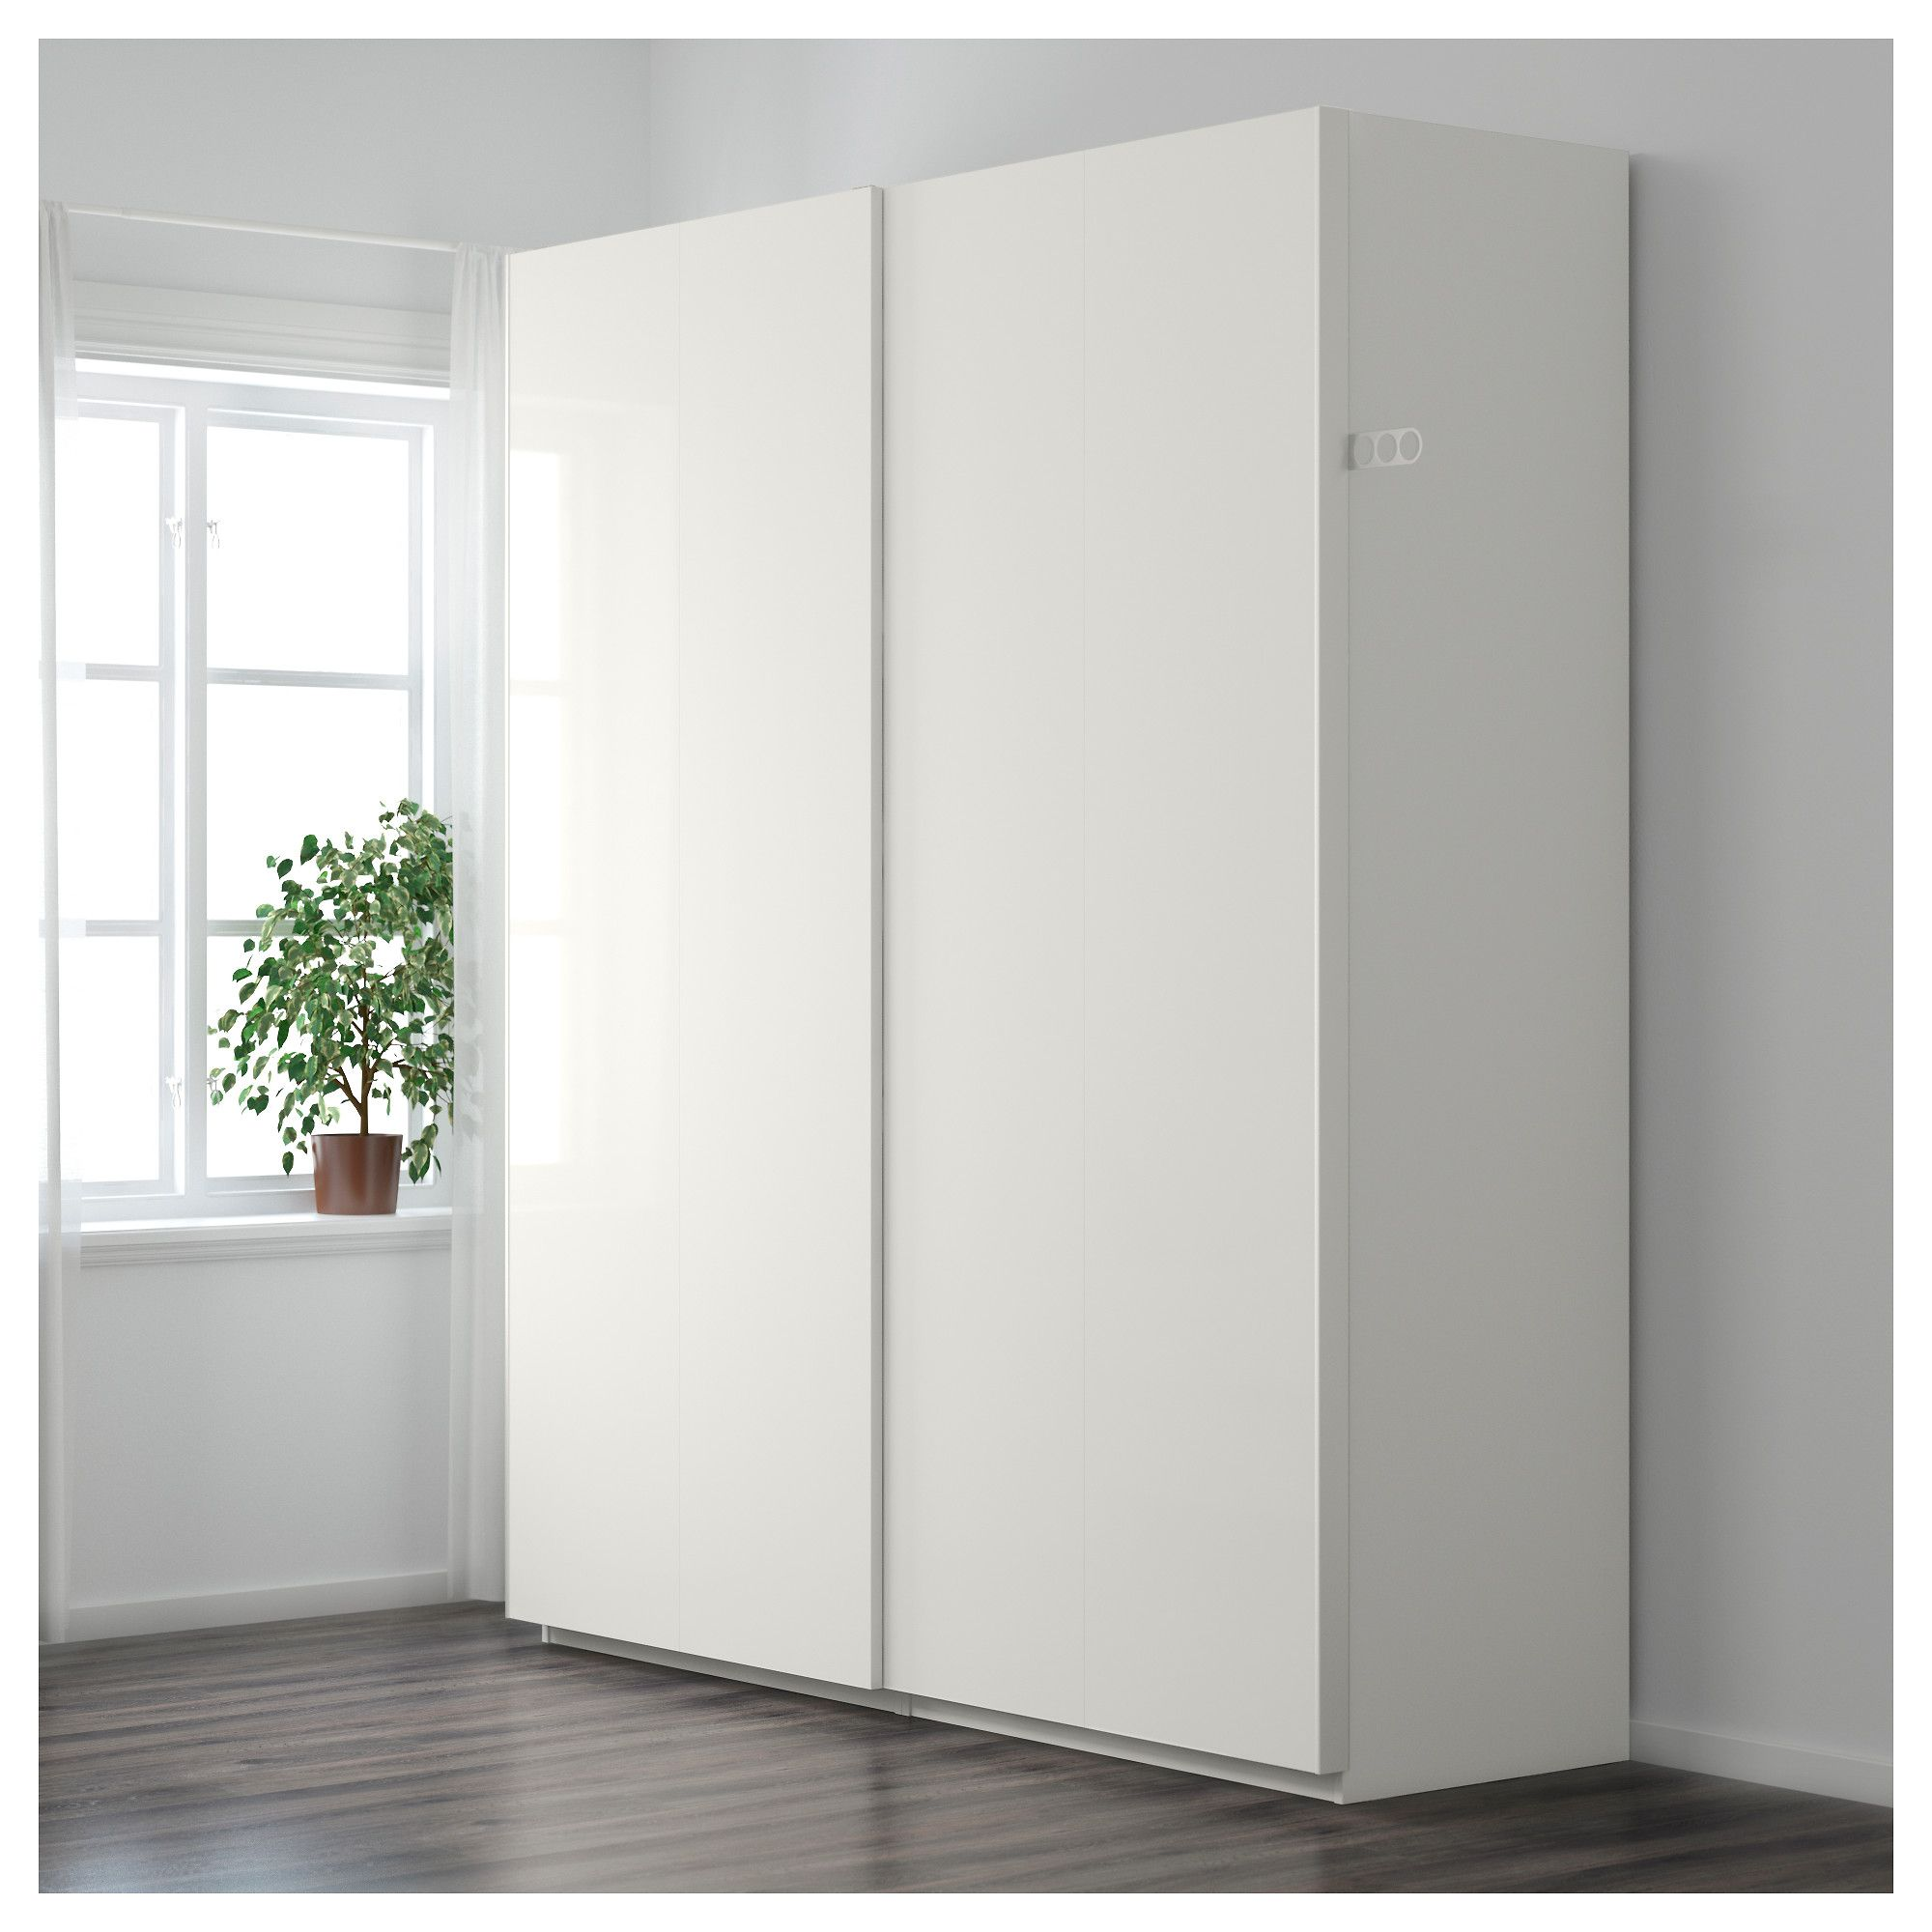 Furniture and Home Furnishings Ikea pax wardrobe, Pax